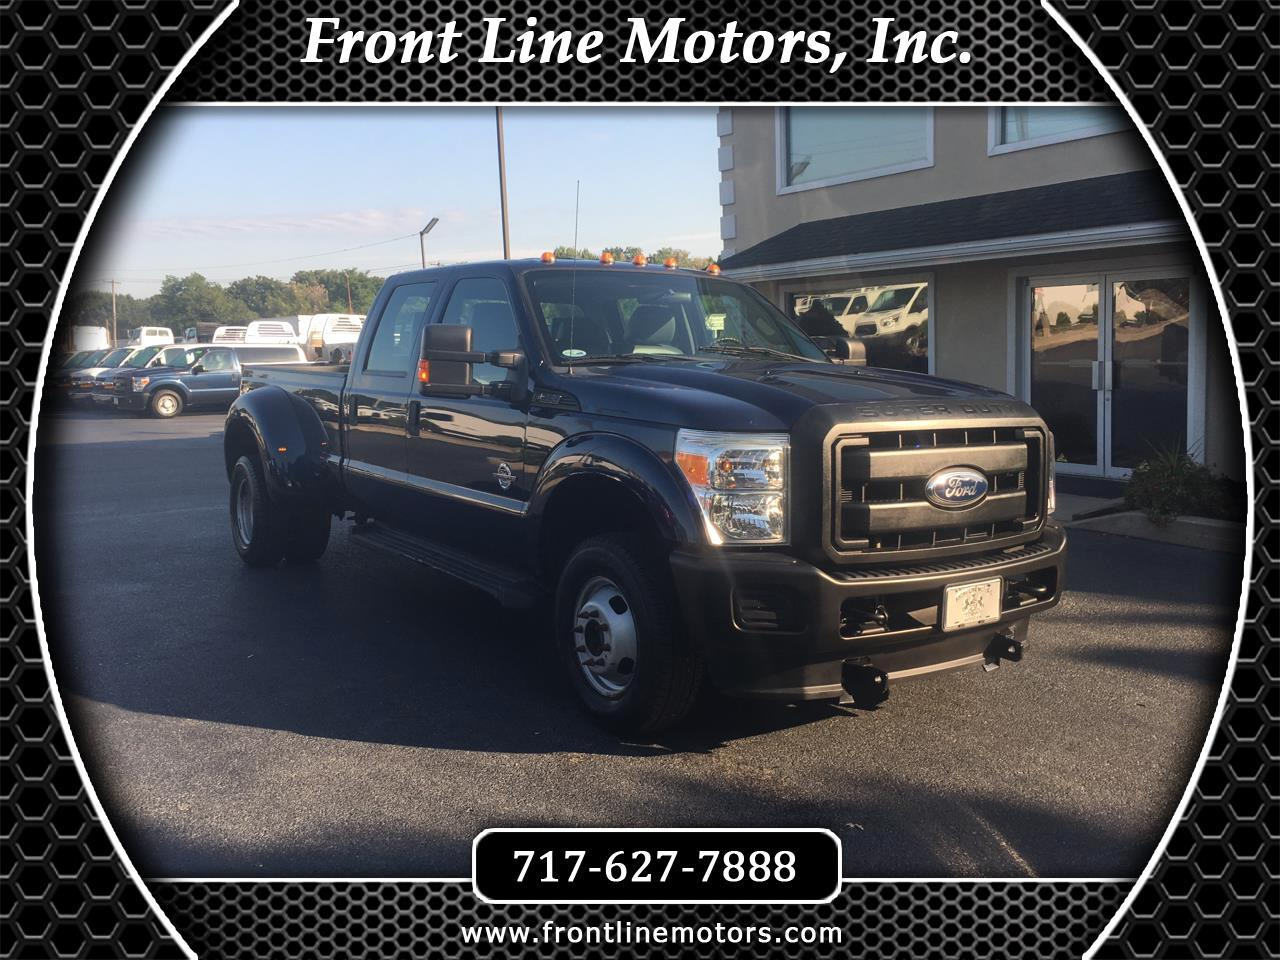 2011 Ford Super Duty F-350 DRW 4WD Crew Cab 172